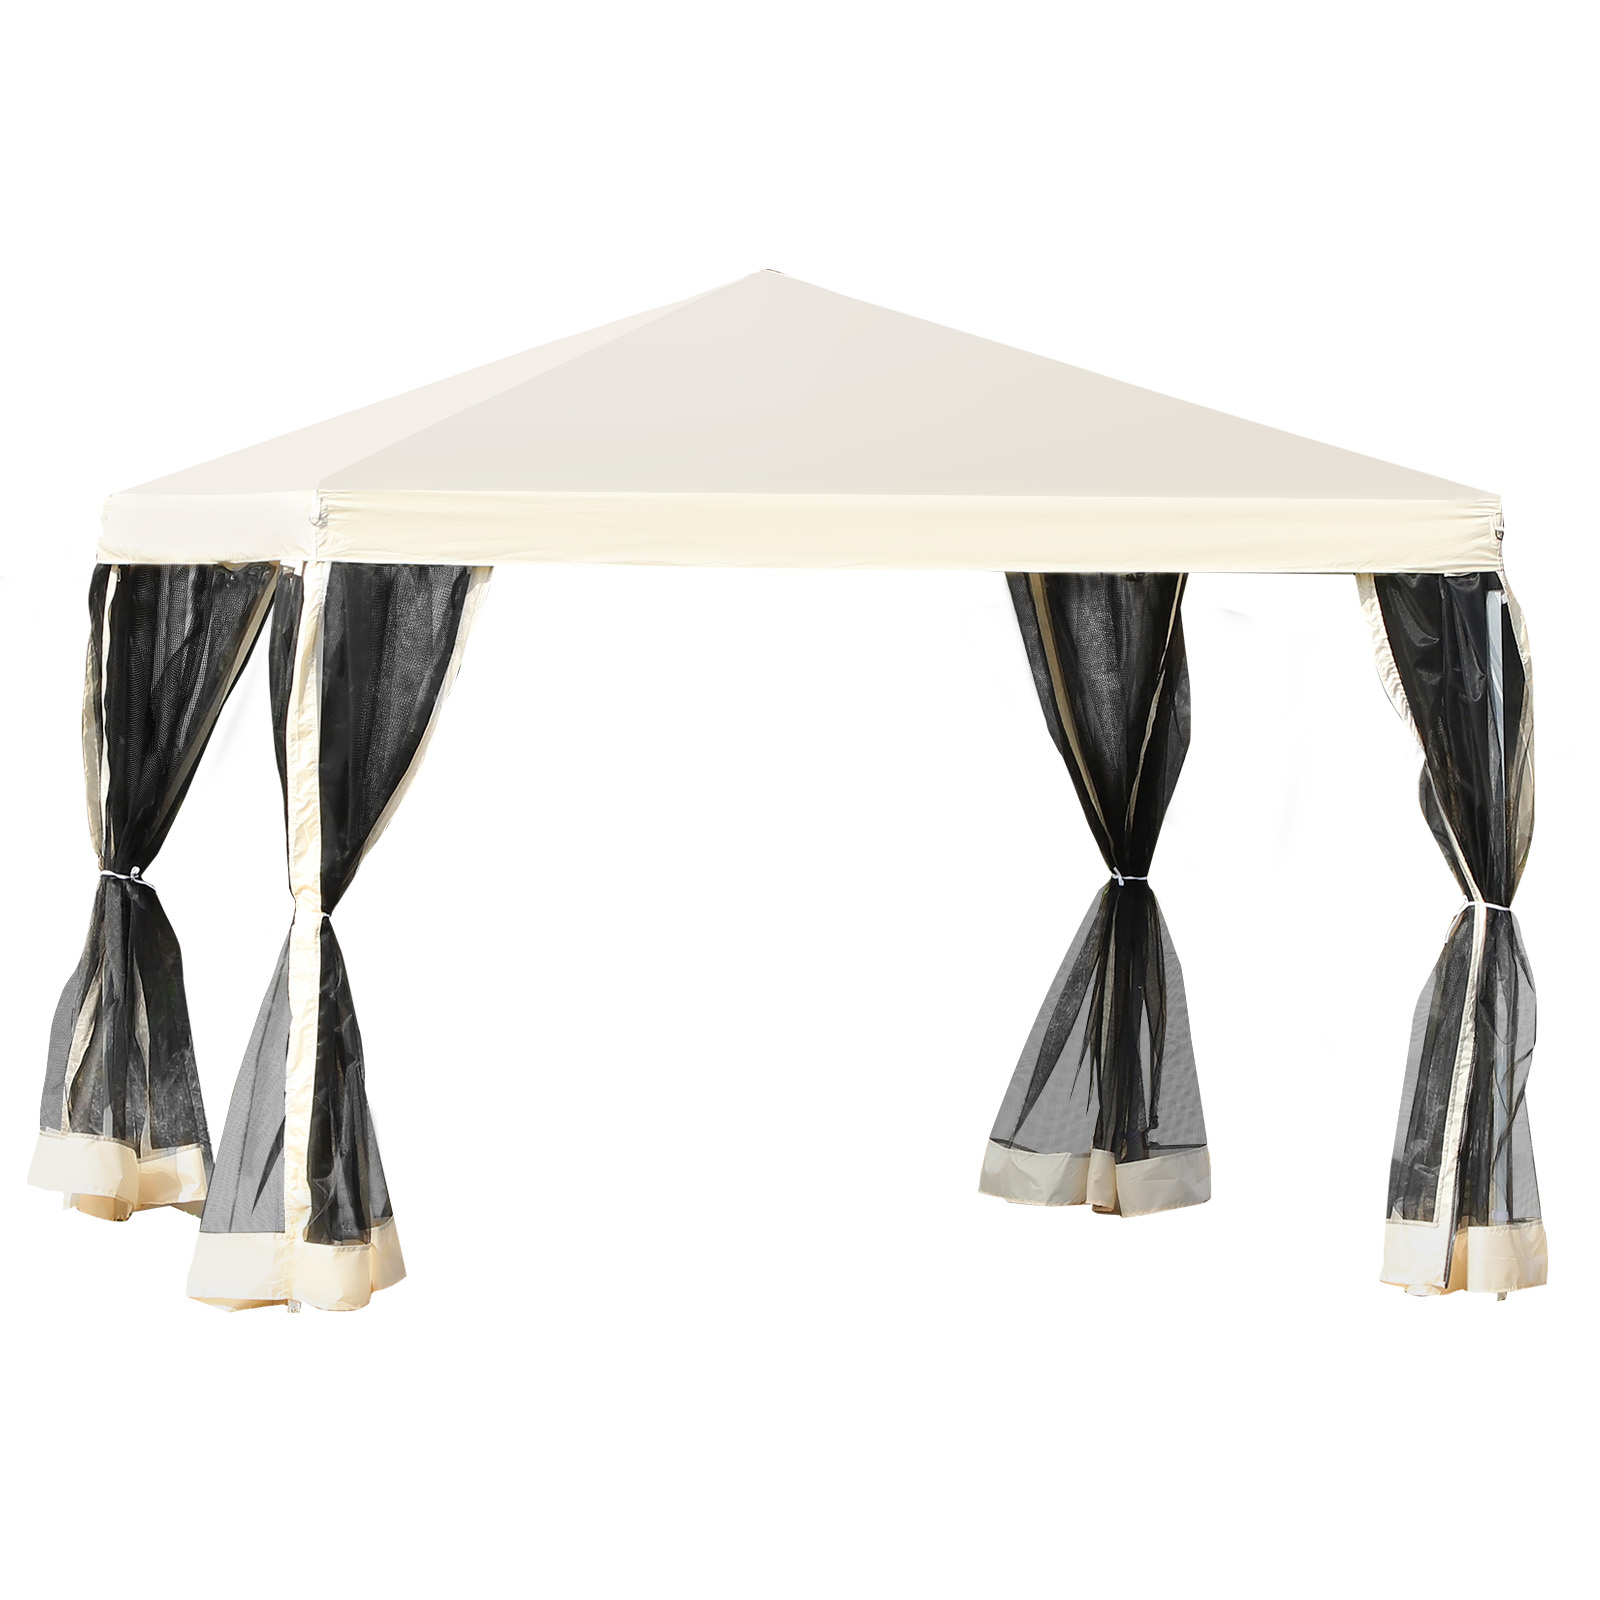 Outsunny 10 X 10 Pop Up Canopy Vendor Tent With